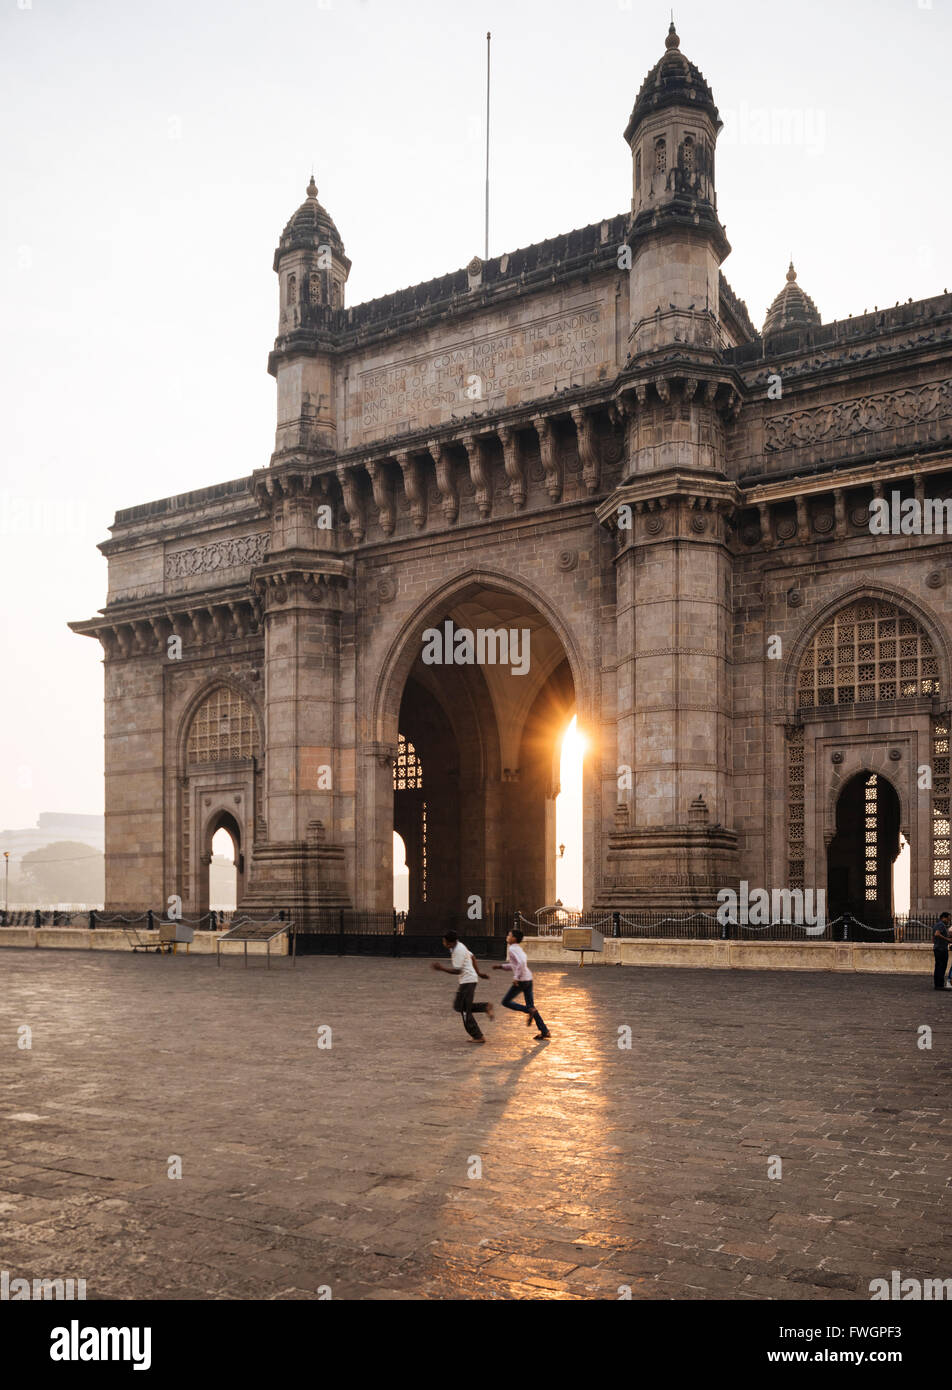 Sunrise dietro il Gateway in India, Mumbai (Bombay), India, Asia del Sud Immagini Stock